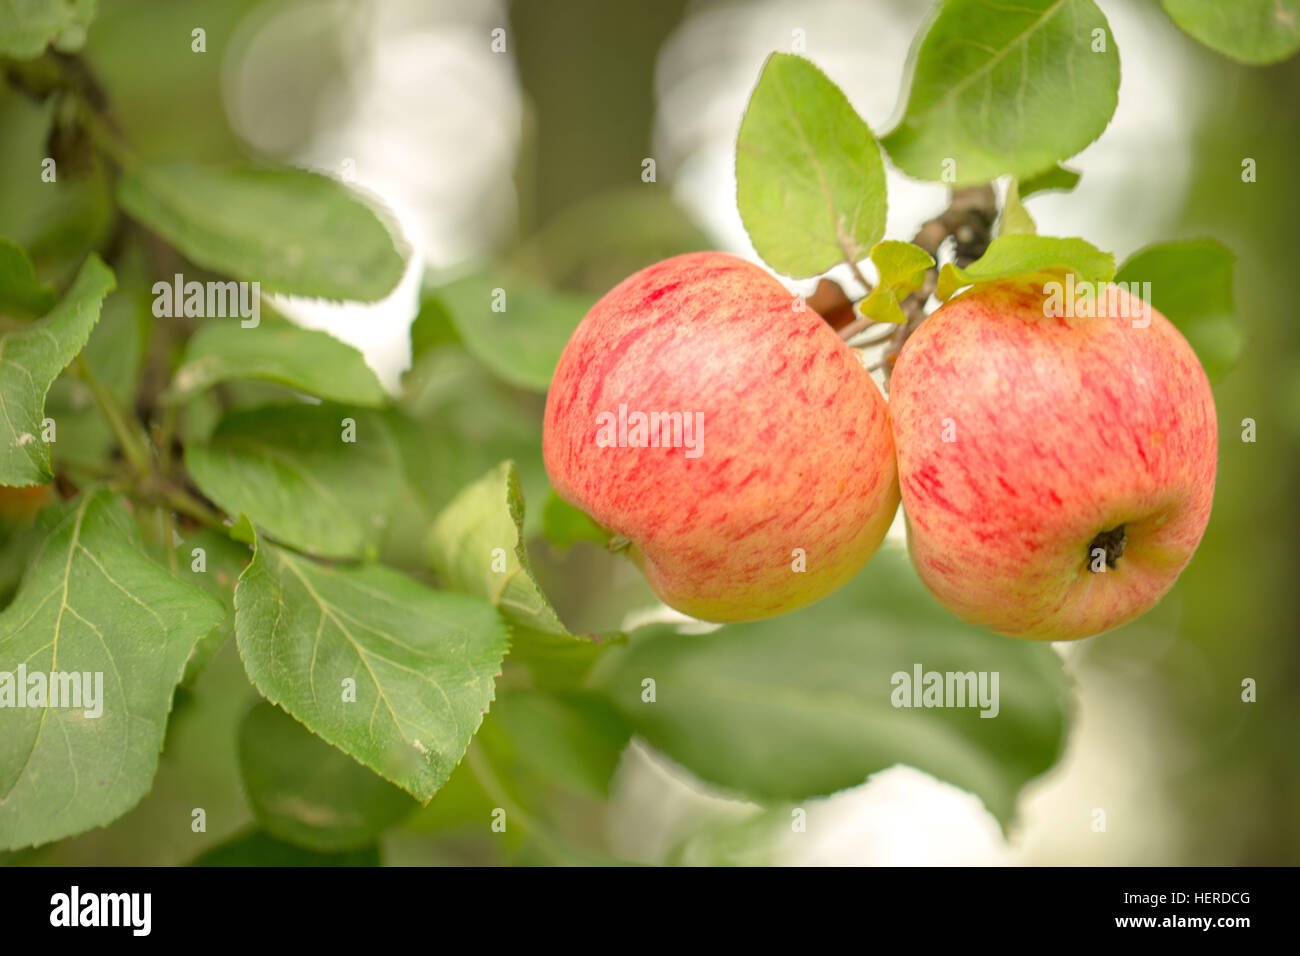 2 apples,2 objects,4-season autumn,agriculture,apple tree,apple tree branch,autumn,bokeh,bright,closeup,close-up - Stock Image